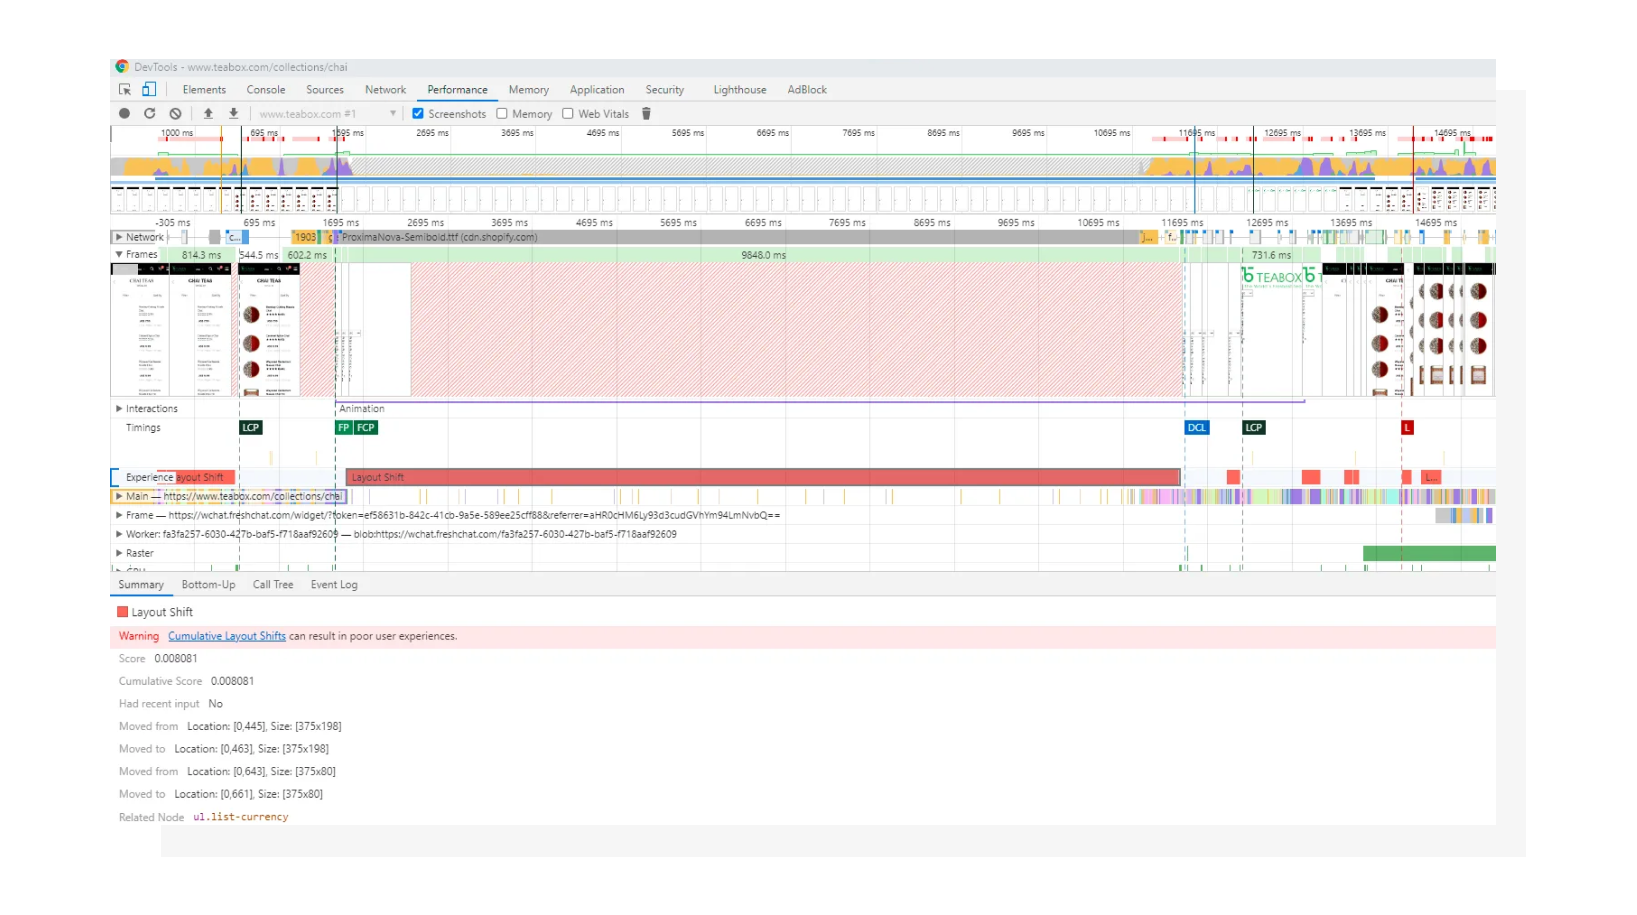 Layout shifts in Chrome DevTools